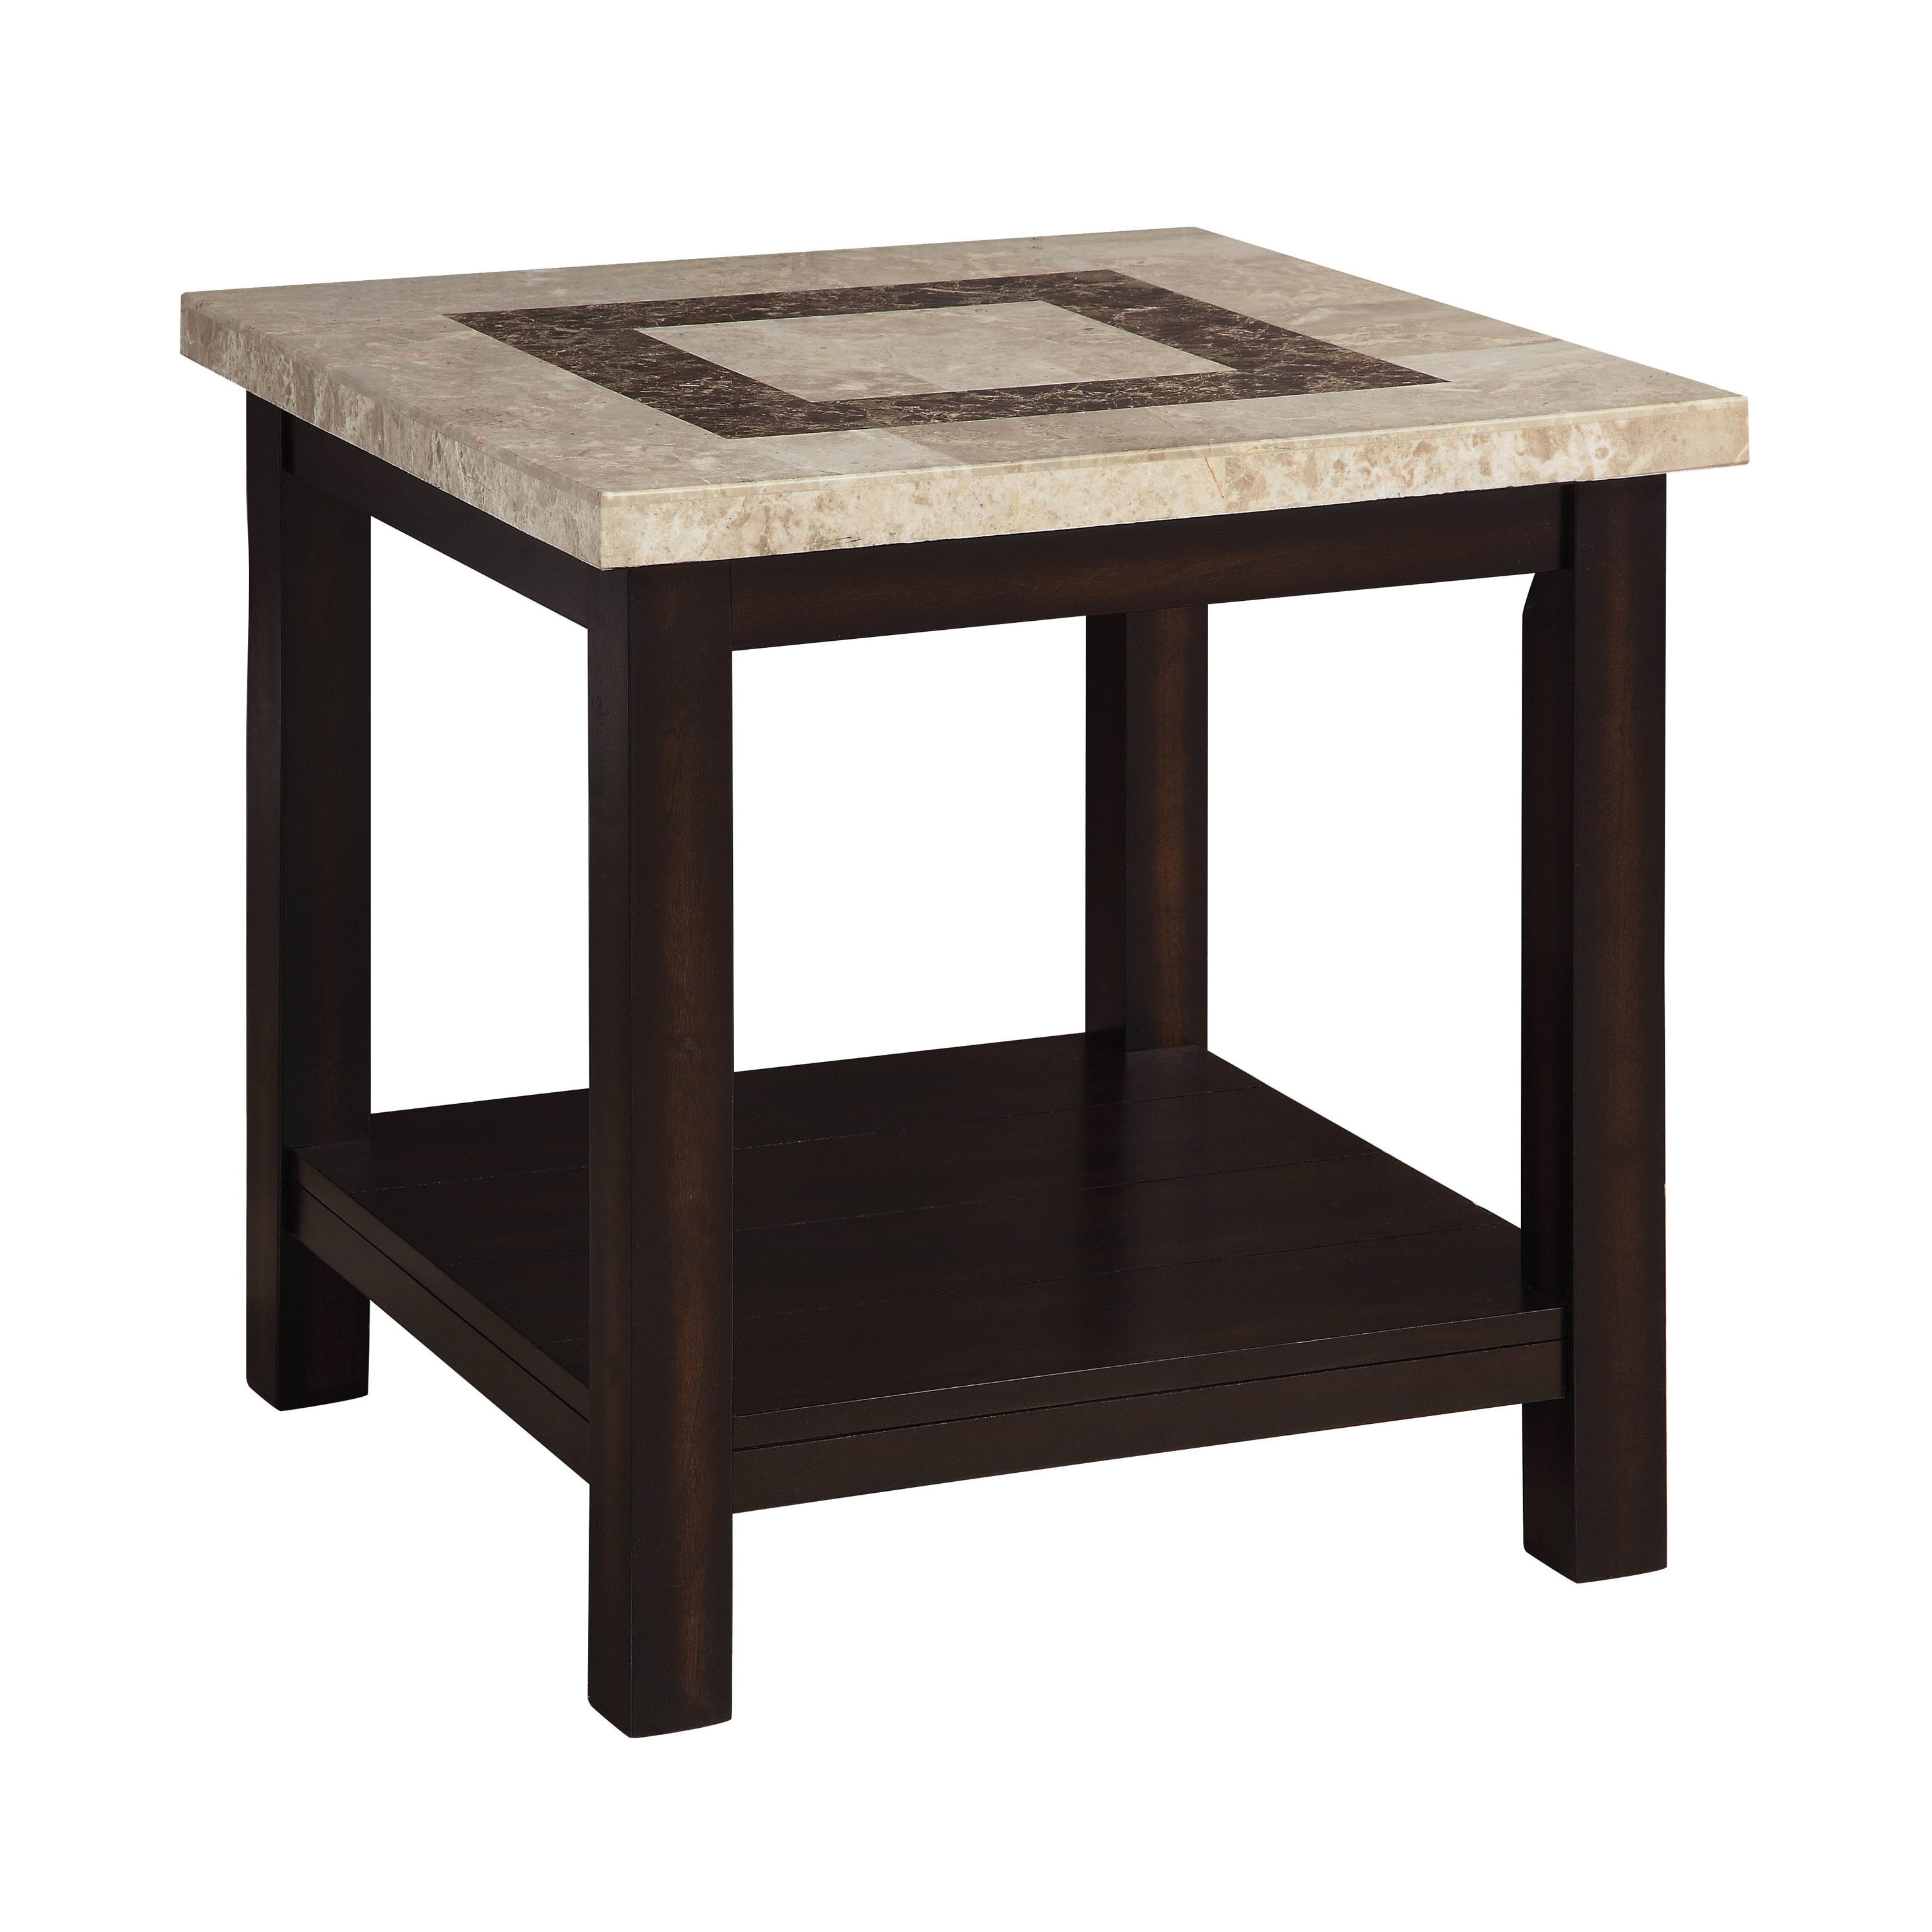 Shop furniture of america calgary genuine marble end table free shipping today overstock com 20853036